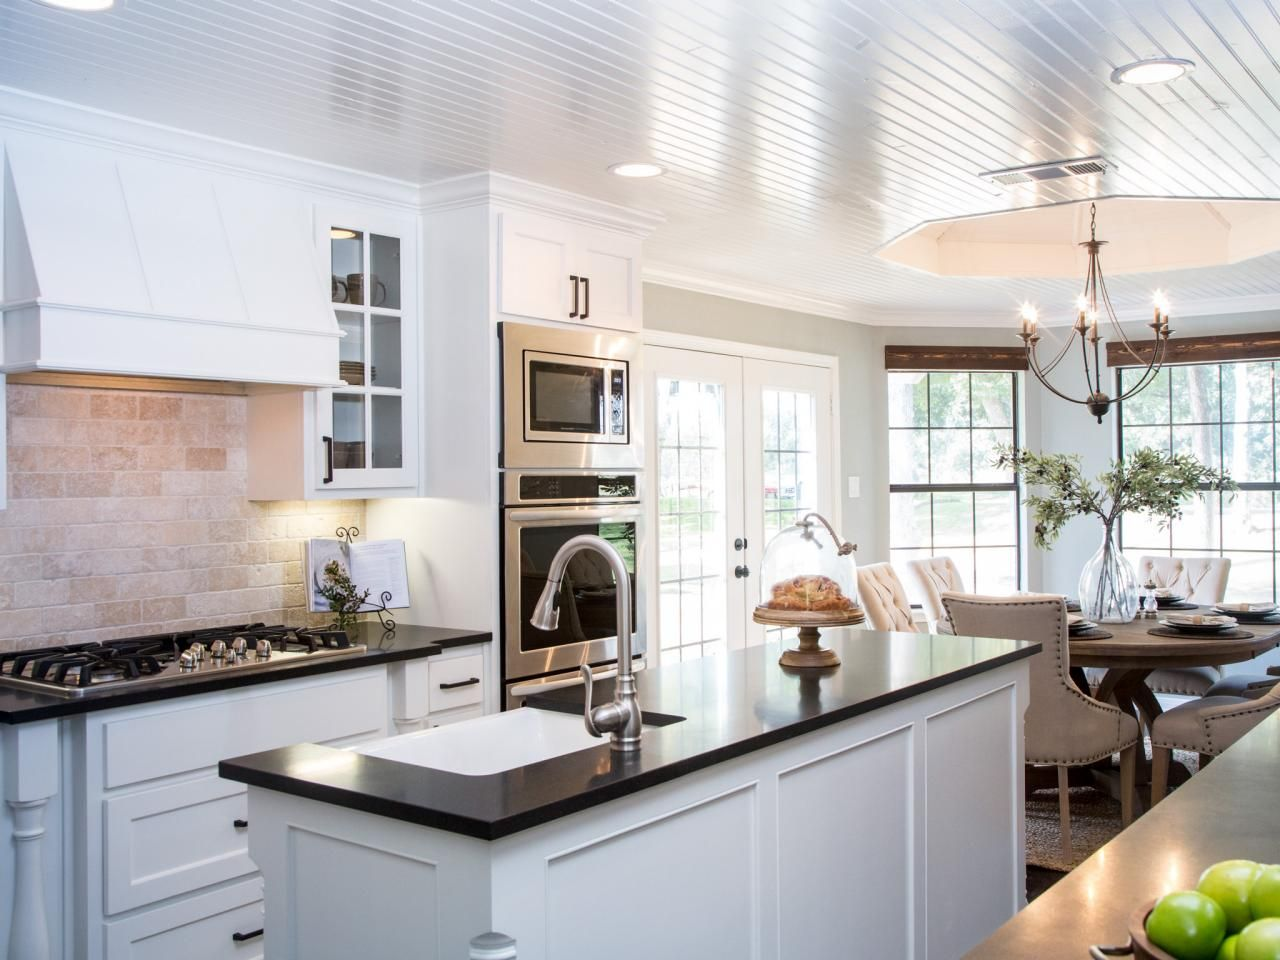 Fixer upper yours mine ours and a home on the river for Kitchen ideas joanna gaines